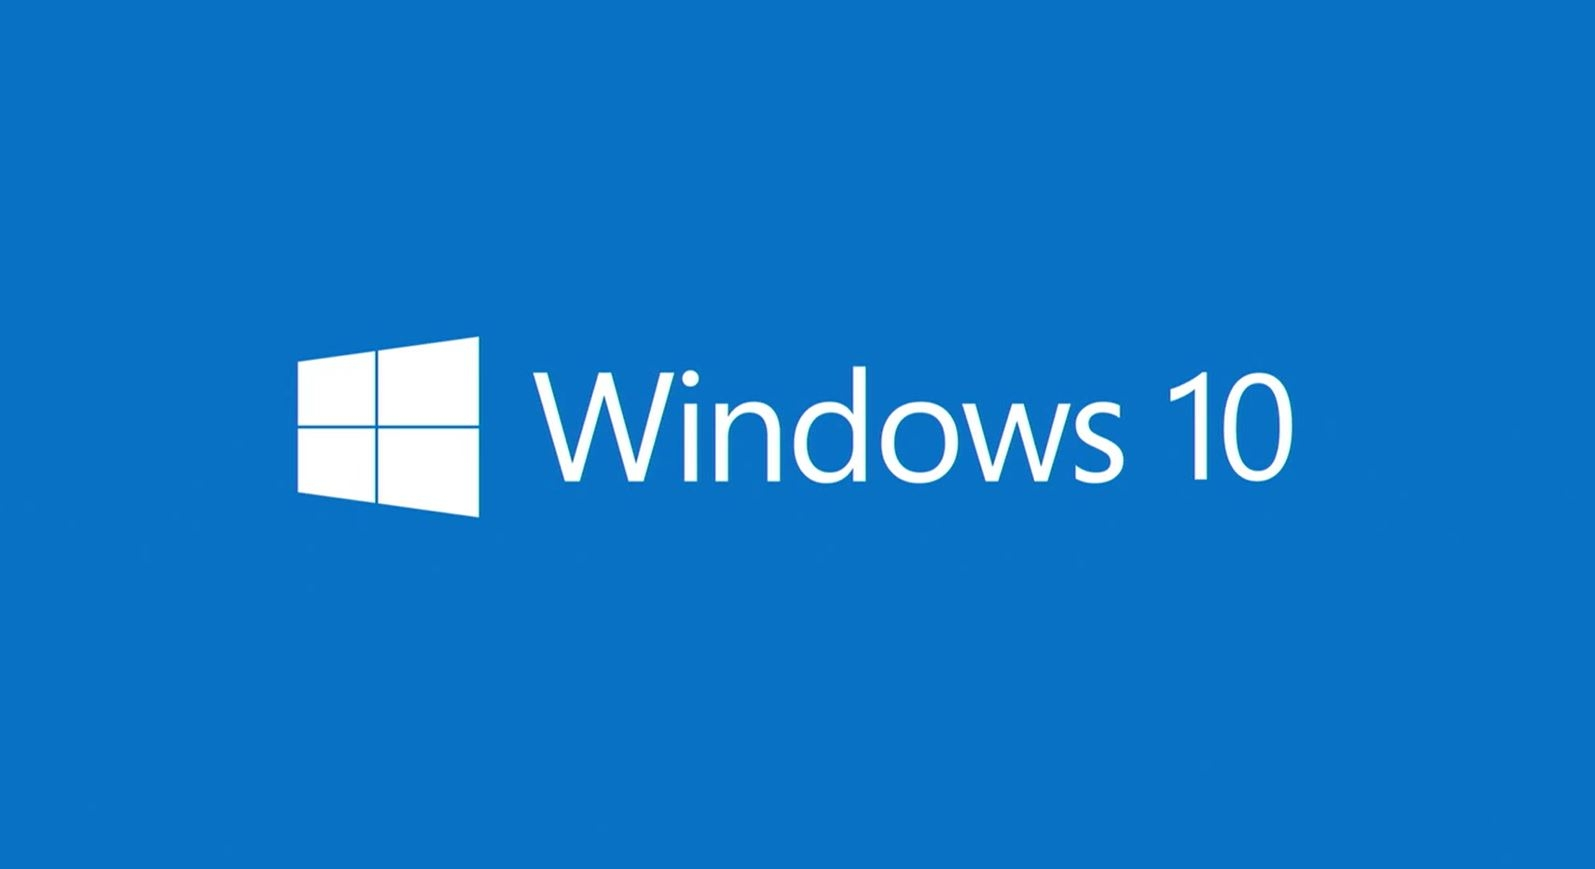 Windows 10 RUS/ENG AIO 2016 [x32/x64]